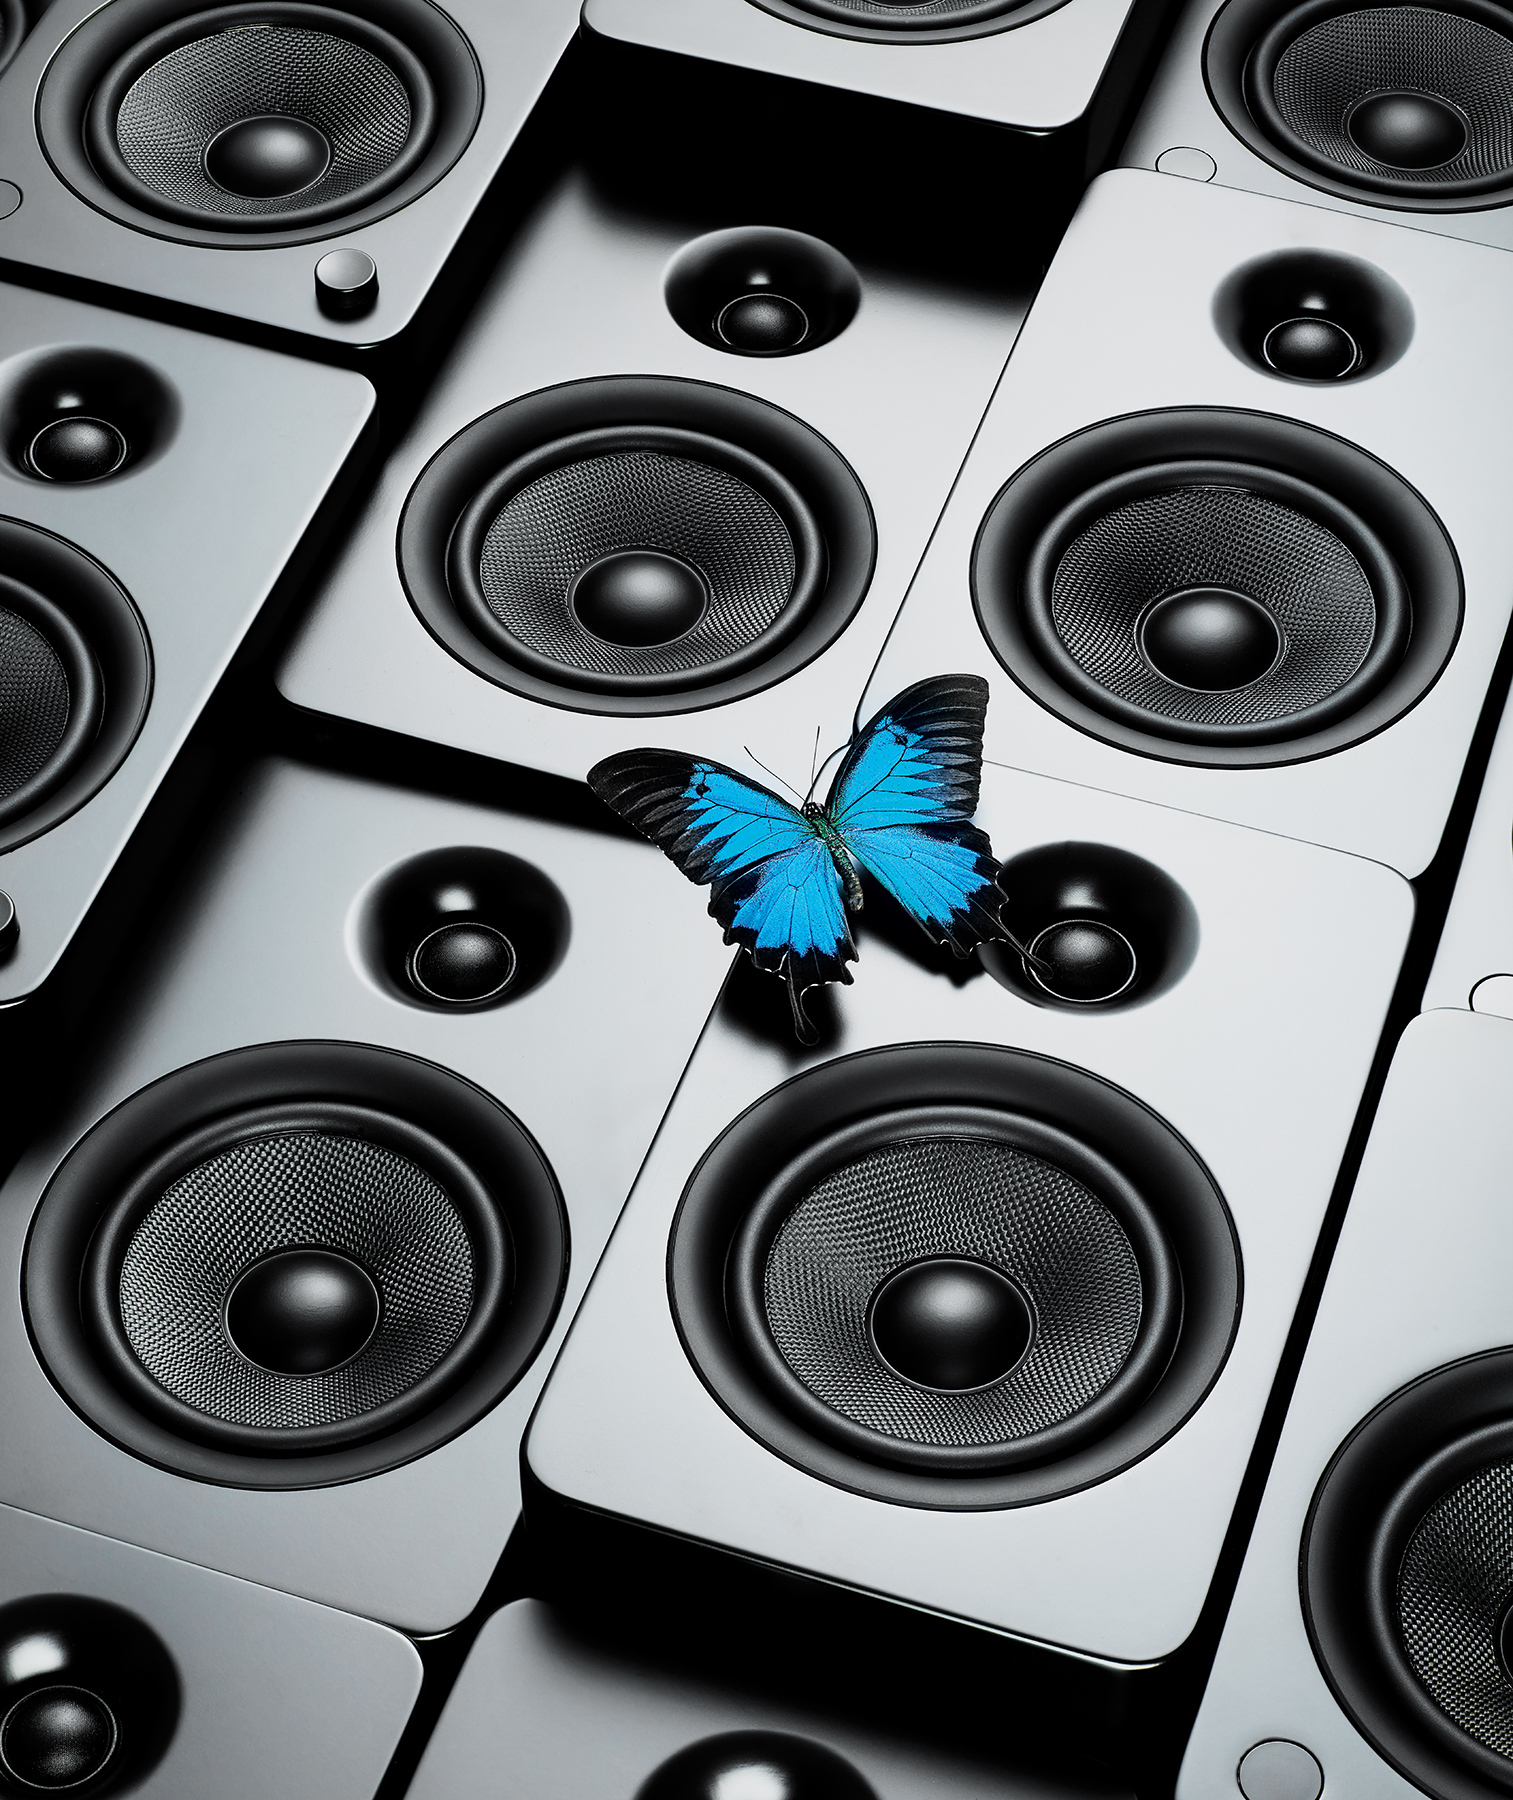 Blue butterfly on speakers